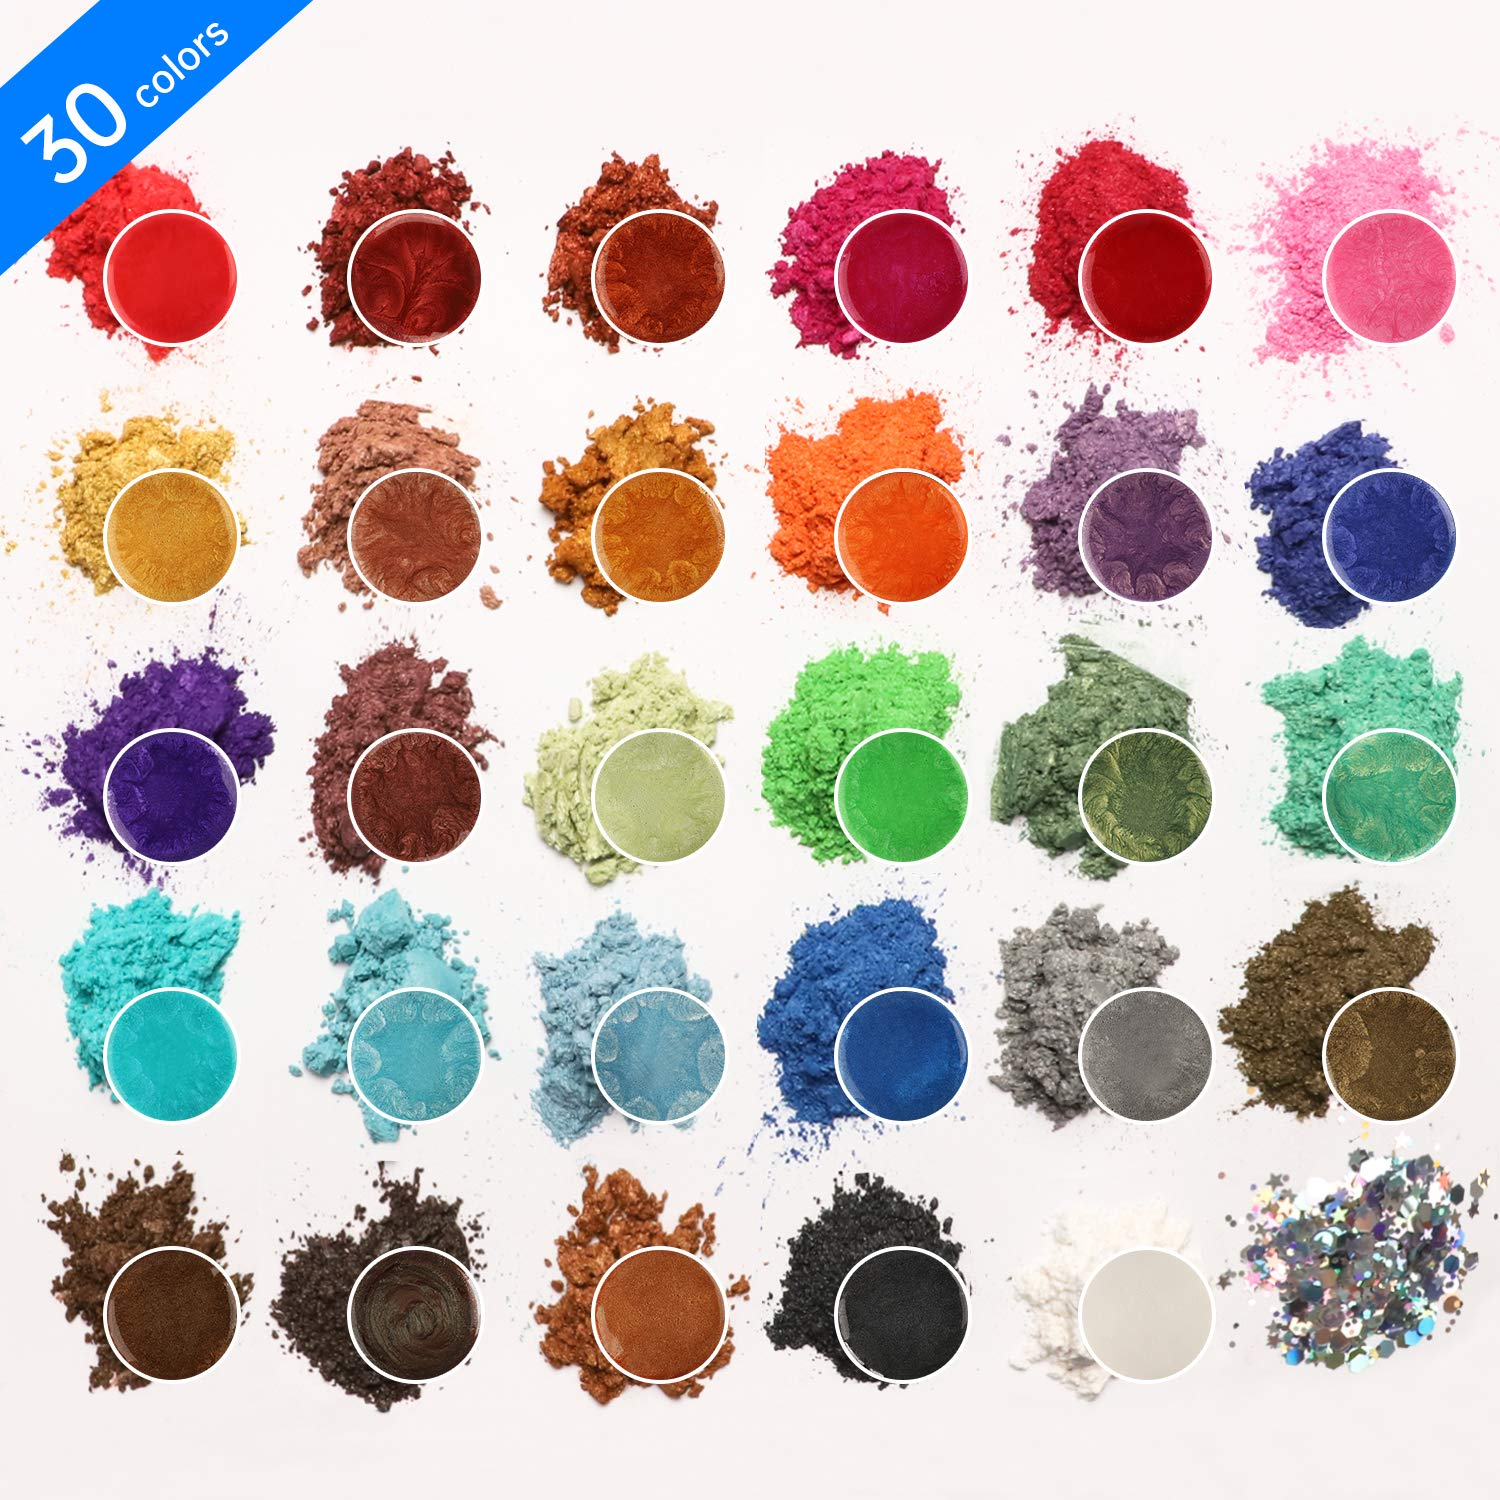 Mica Powder Epoxy Resin Dye - 29 Powdered Color Pigments + 1 Glitter (150G/5.3OZ) - for Soap Slime Bath Bombs Makeup Colorant.